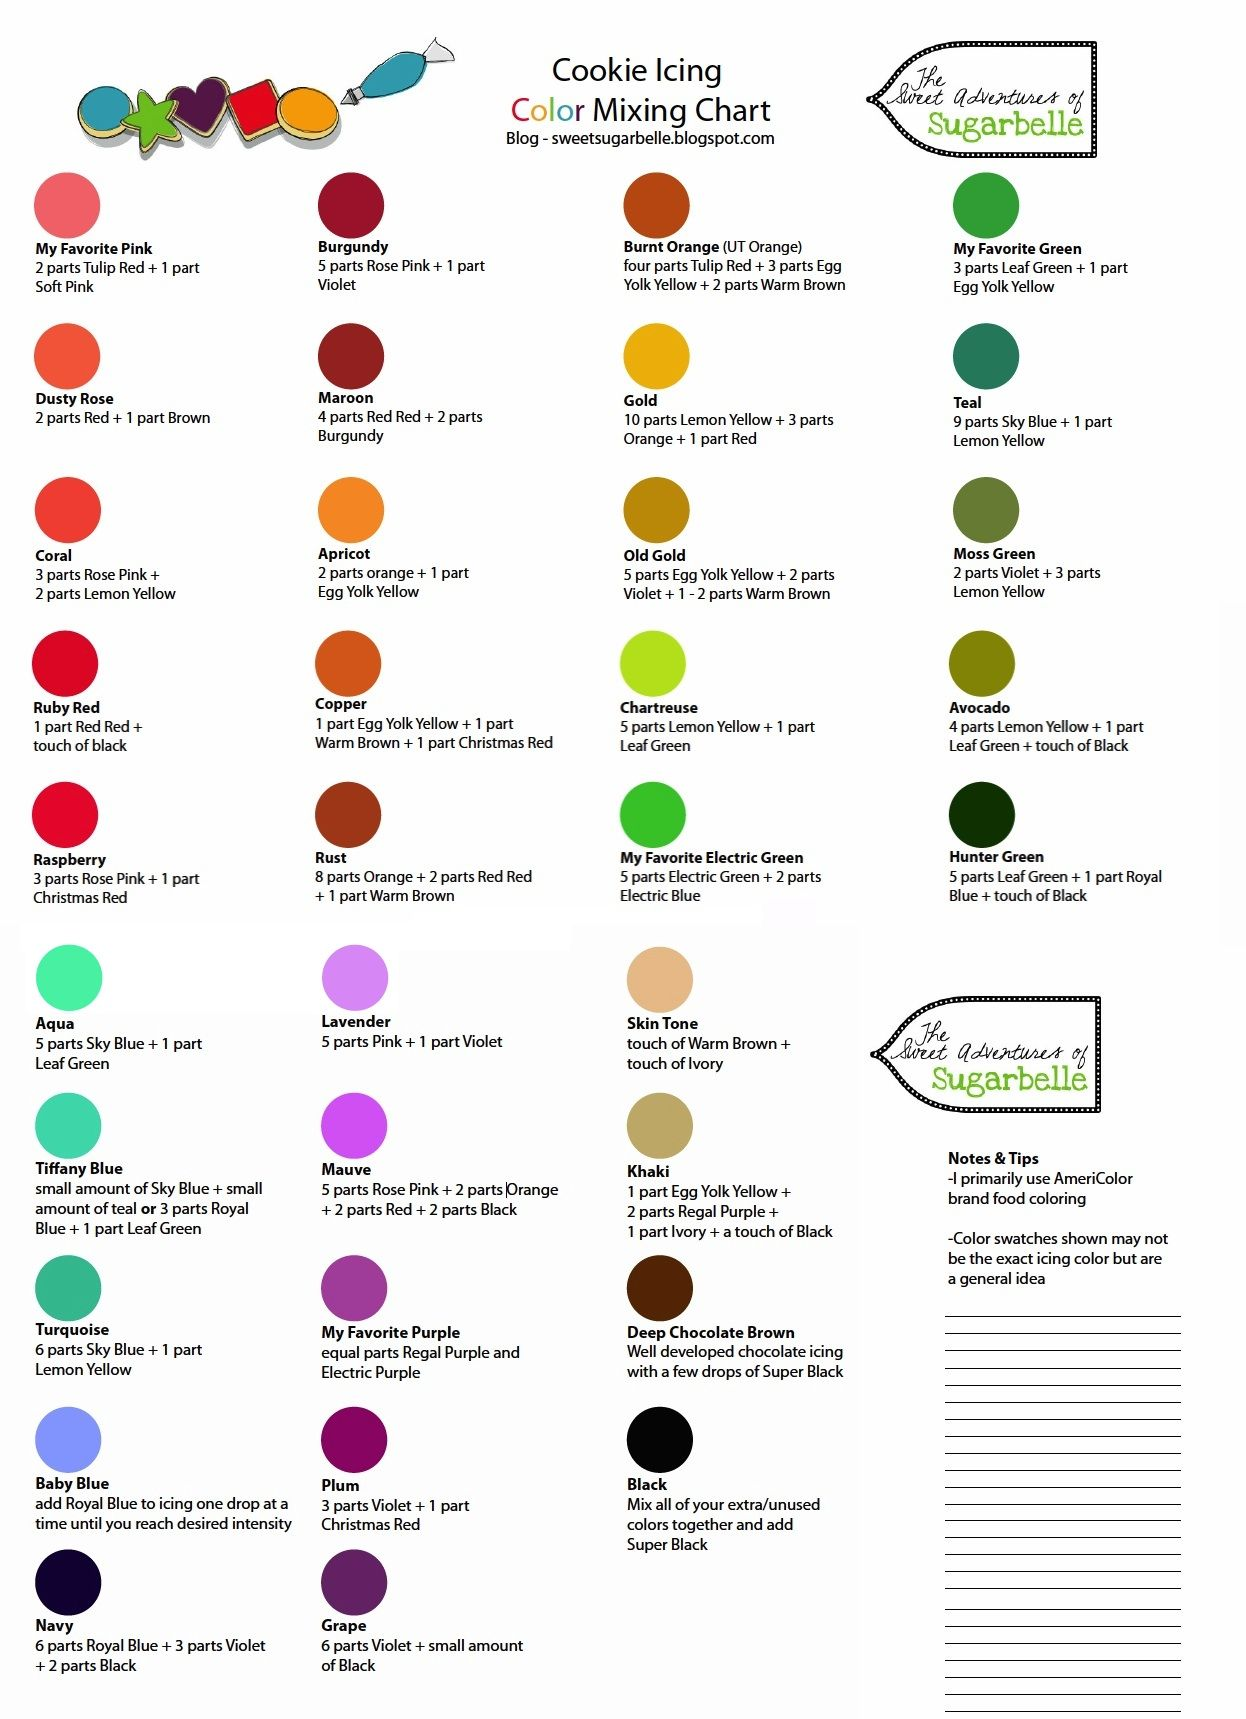 Cookie icing color mixing chart courtesy